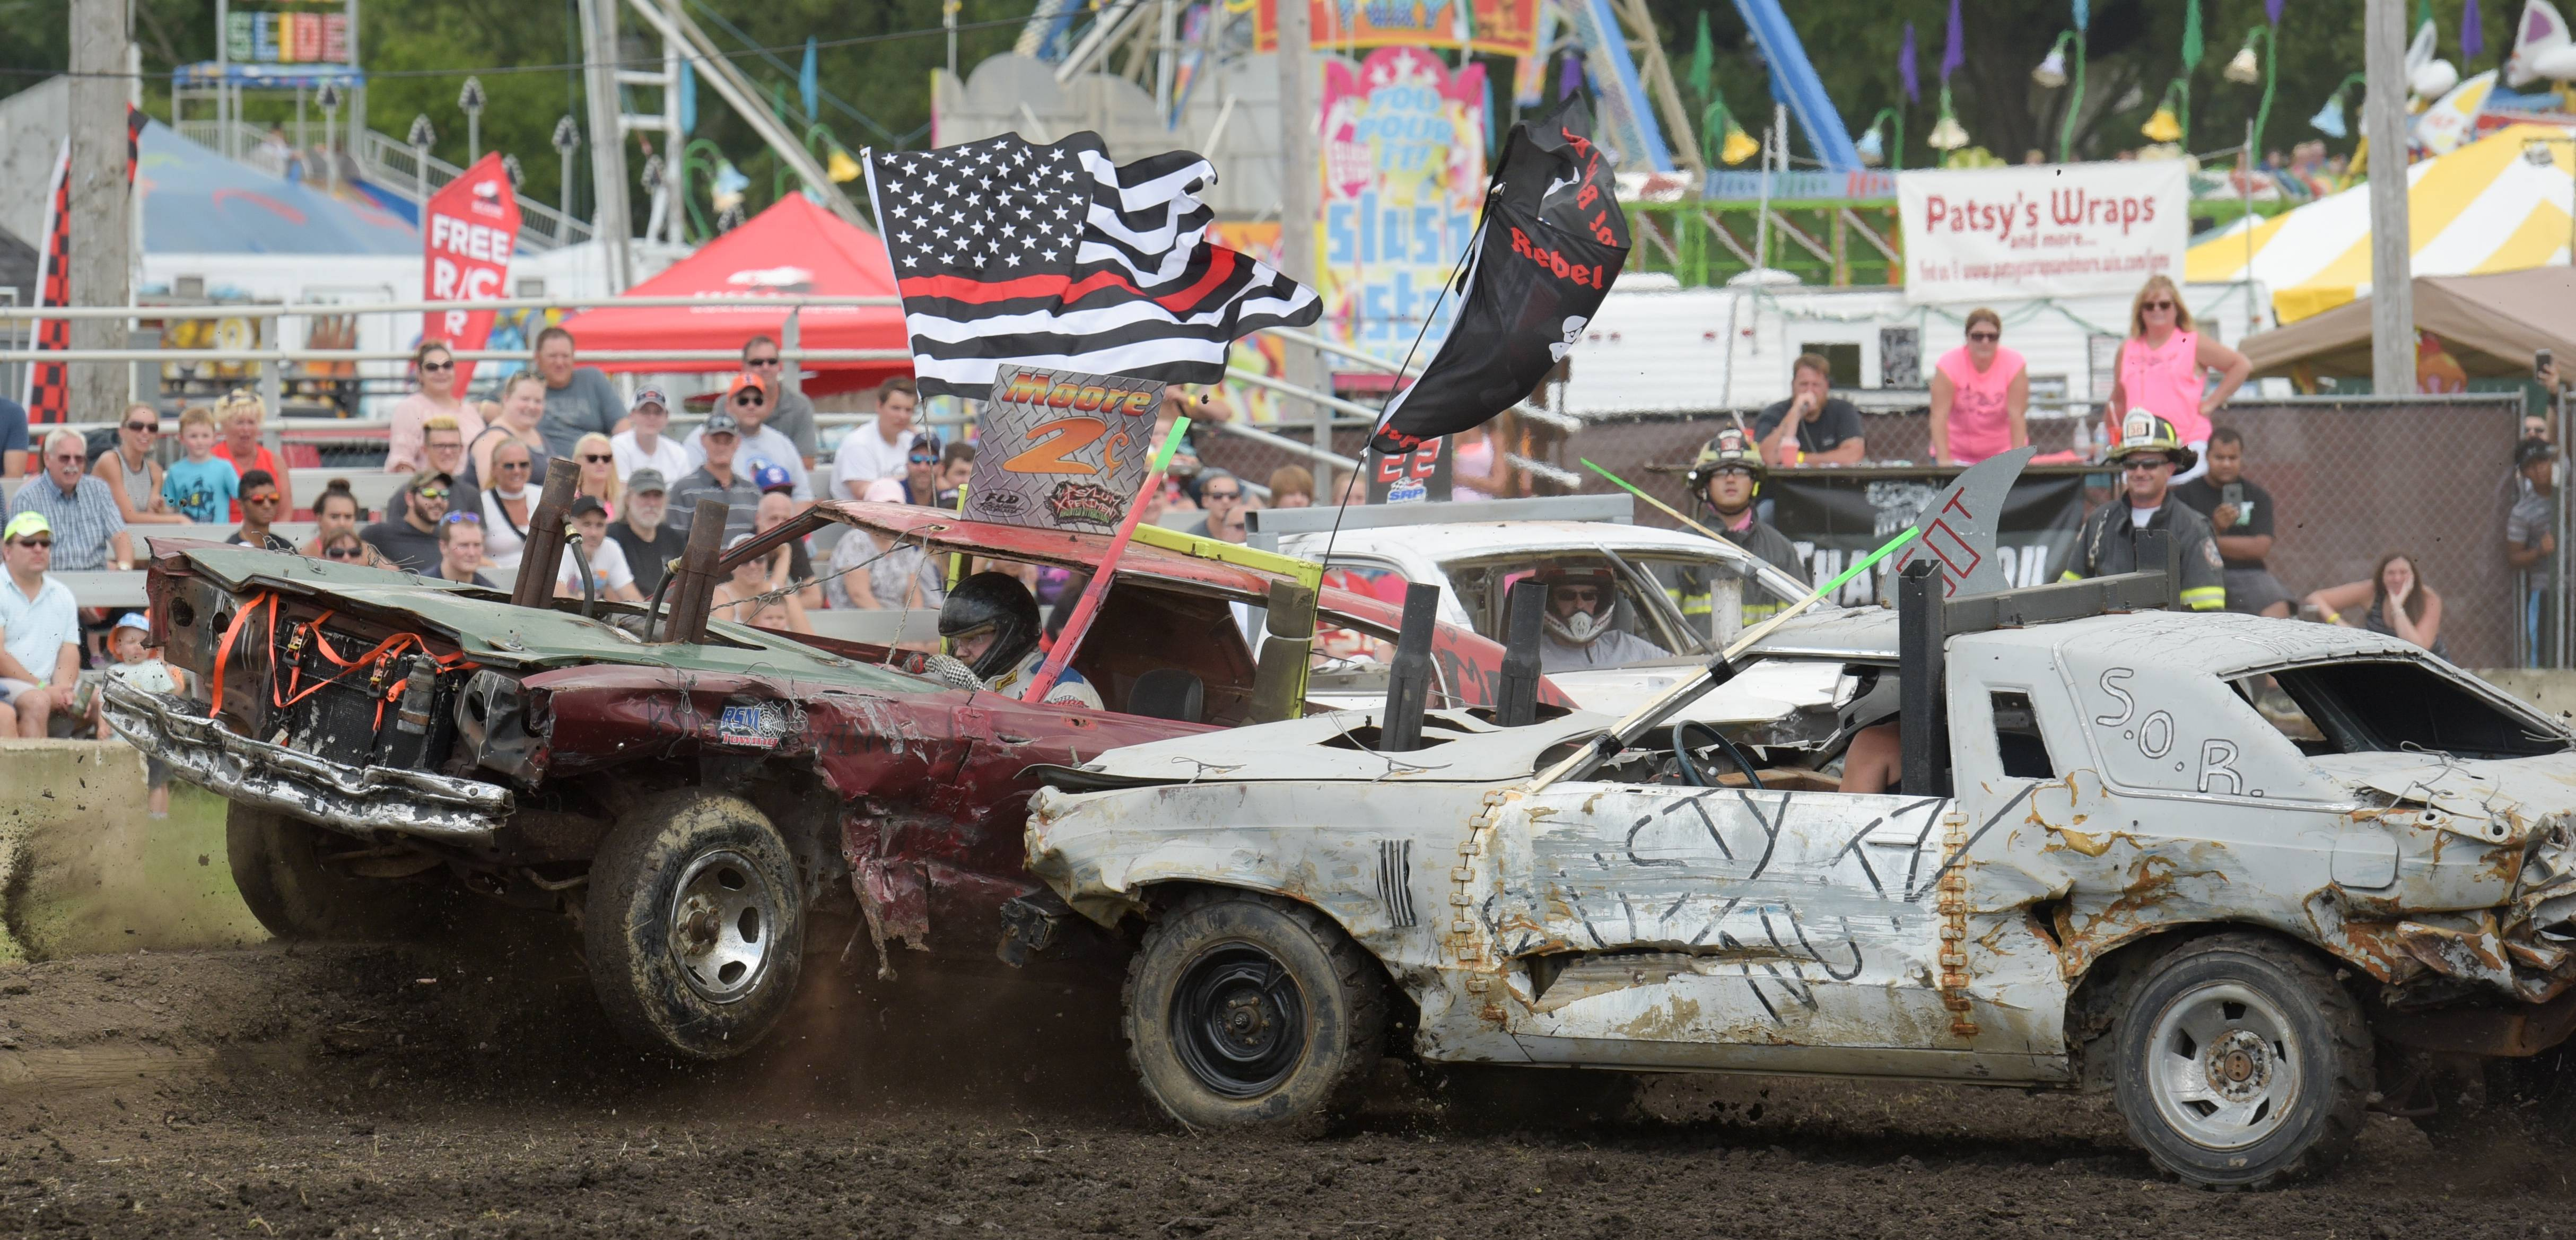 James Moore of Lombard takes a hit by Dan Green of Harvard during the demolition derby at the DuPage County Fair on Sunday. Moore drove one of two cars in the heat to move onto the finals.